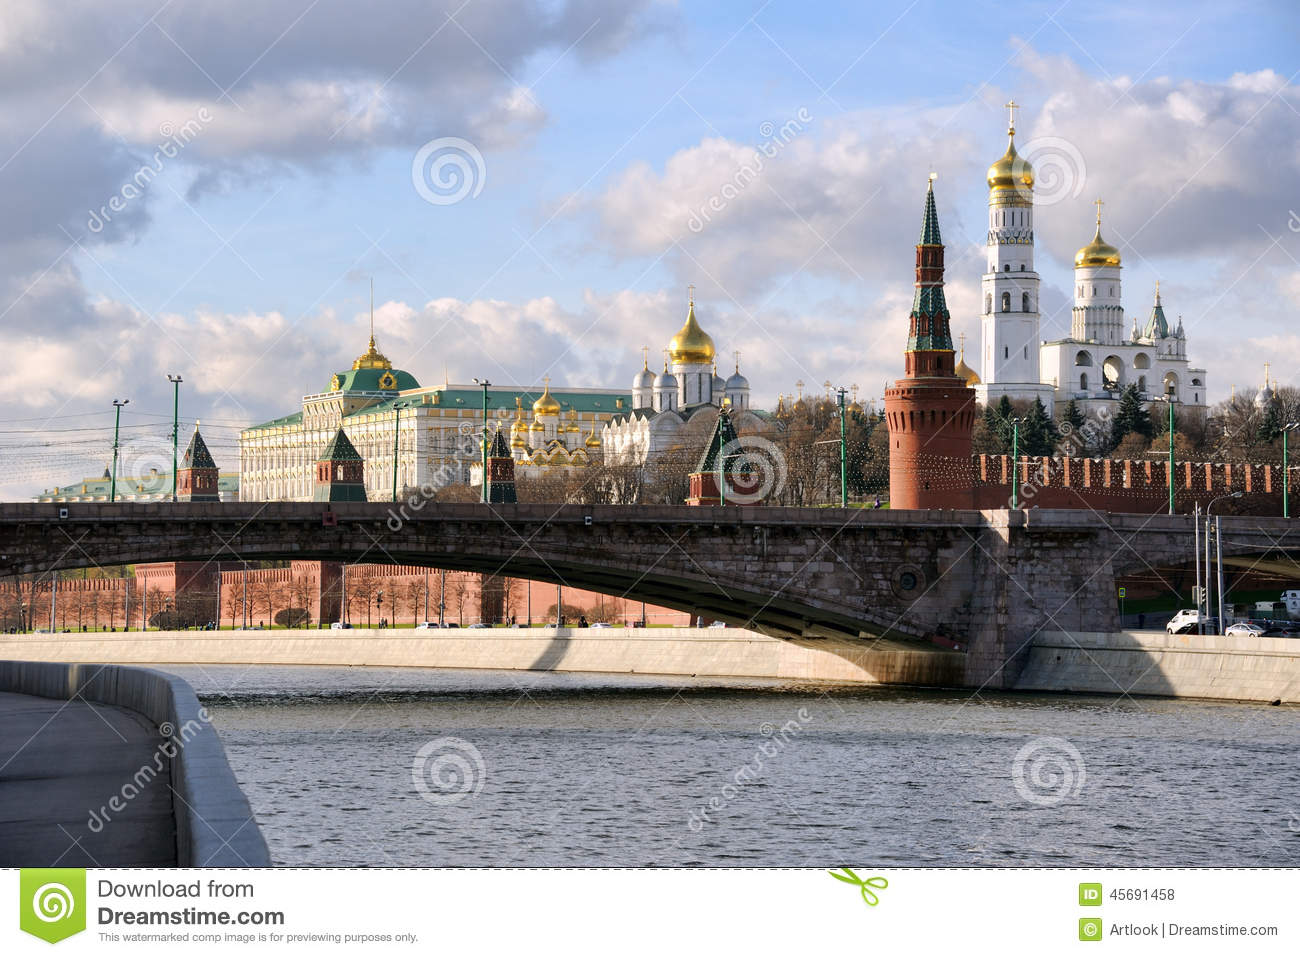 The Moscow Kremlin architectural ensemble: description, history and interesting facts 56